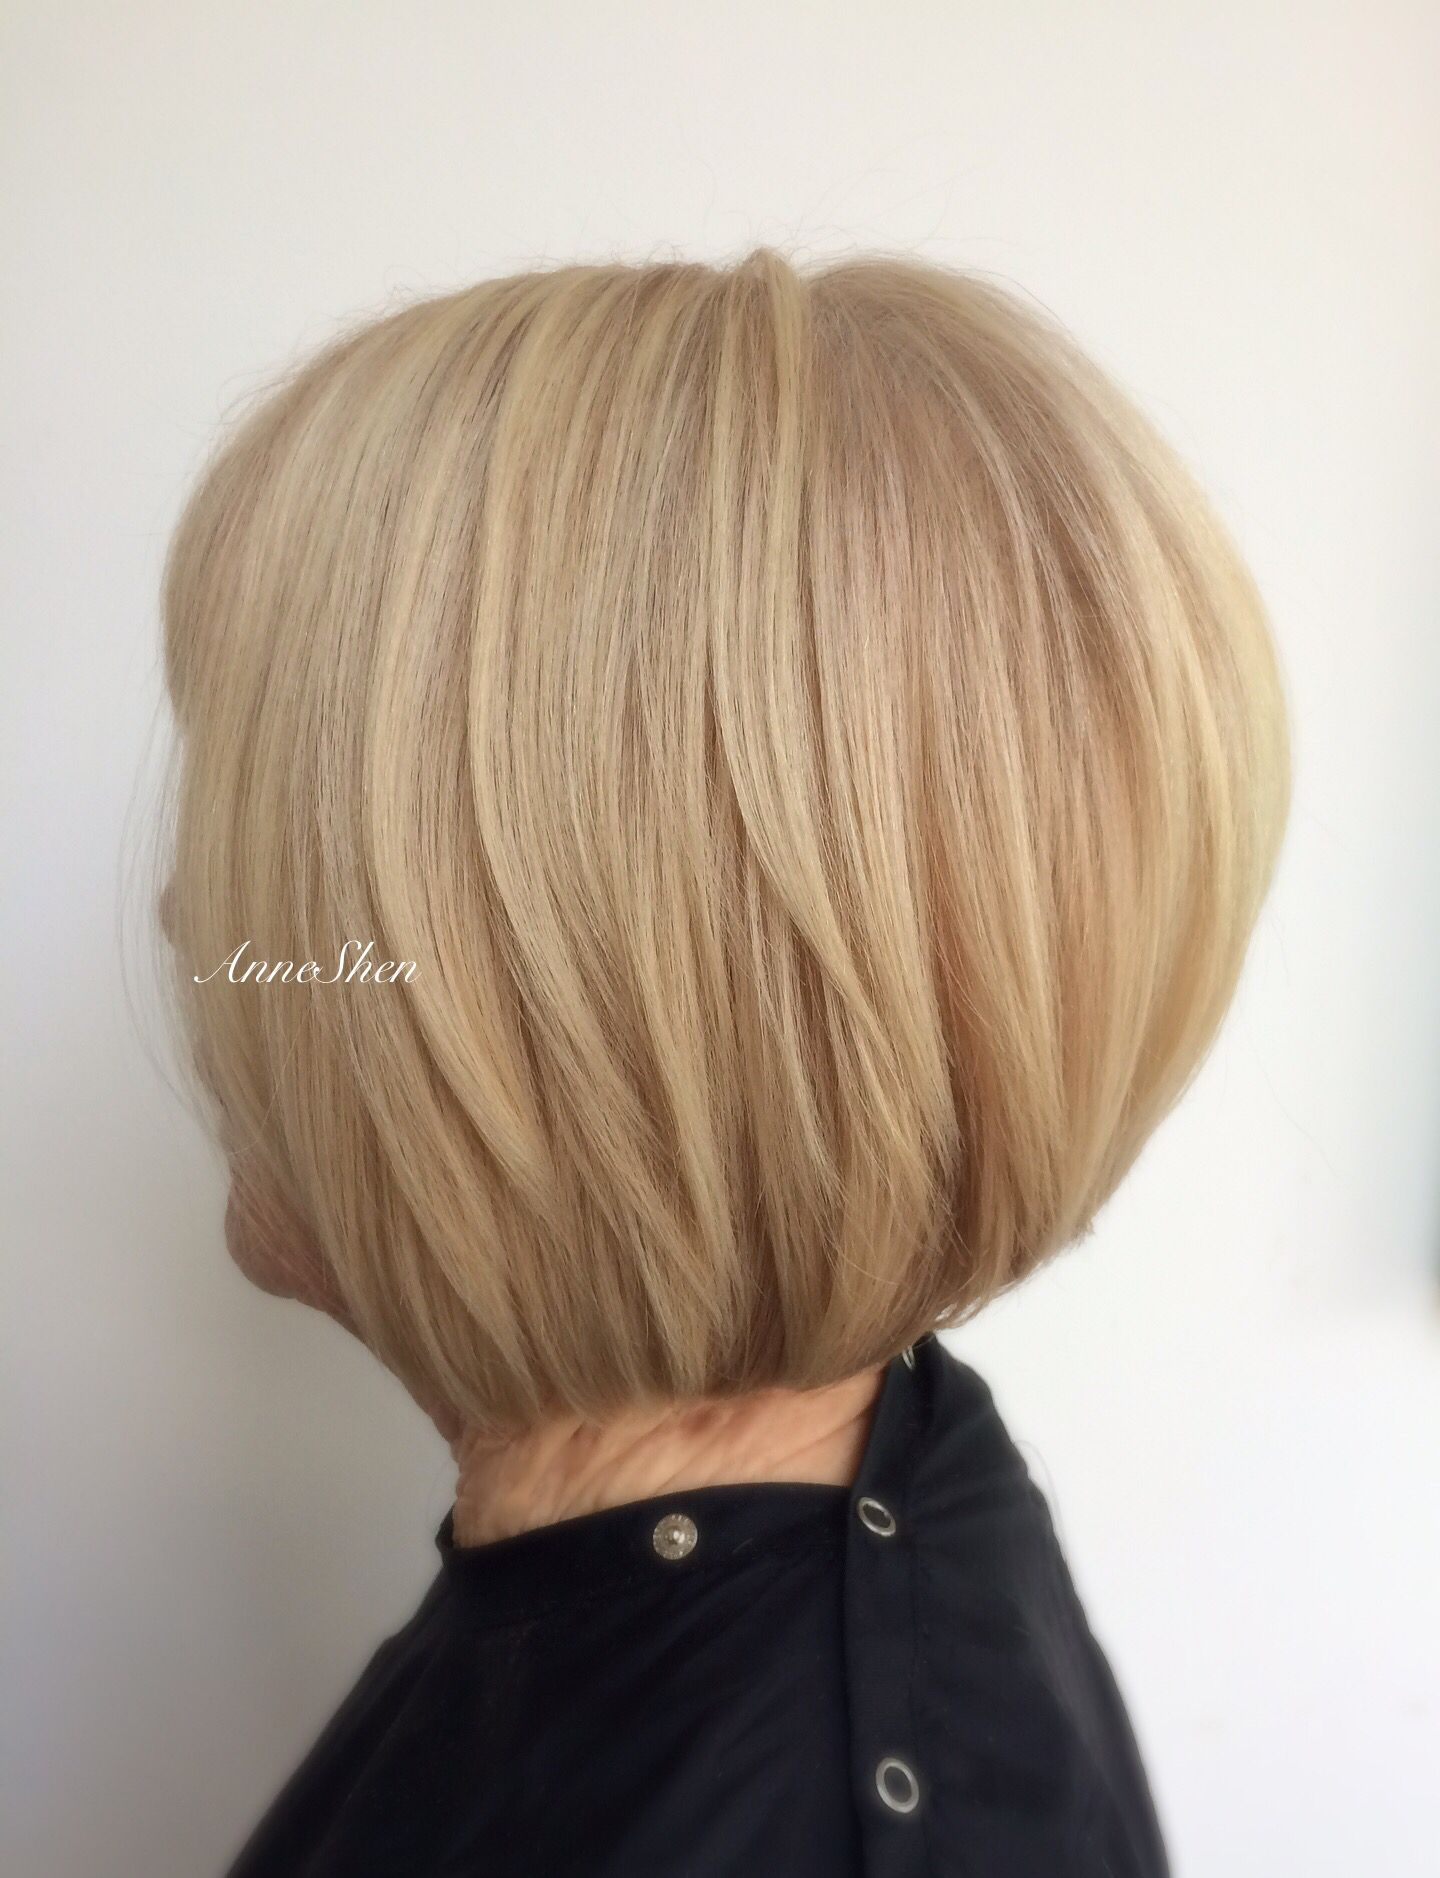 Blonde layered bob blonde layeredbob graduatedbob haircut